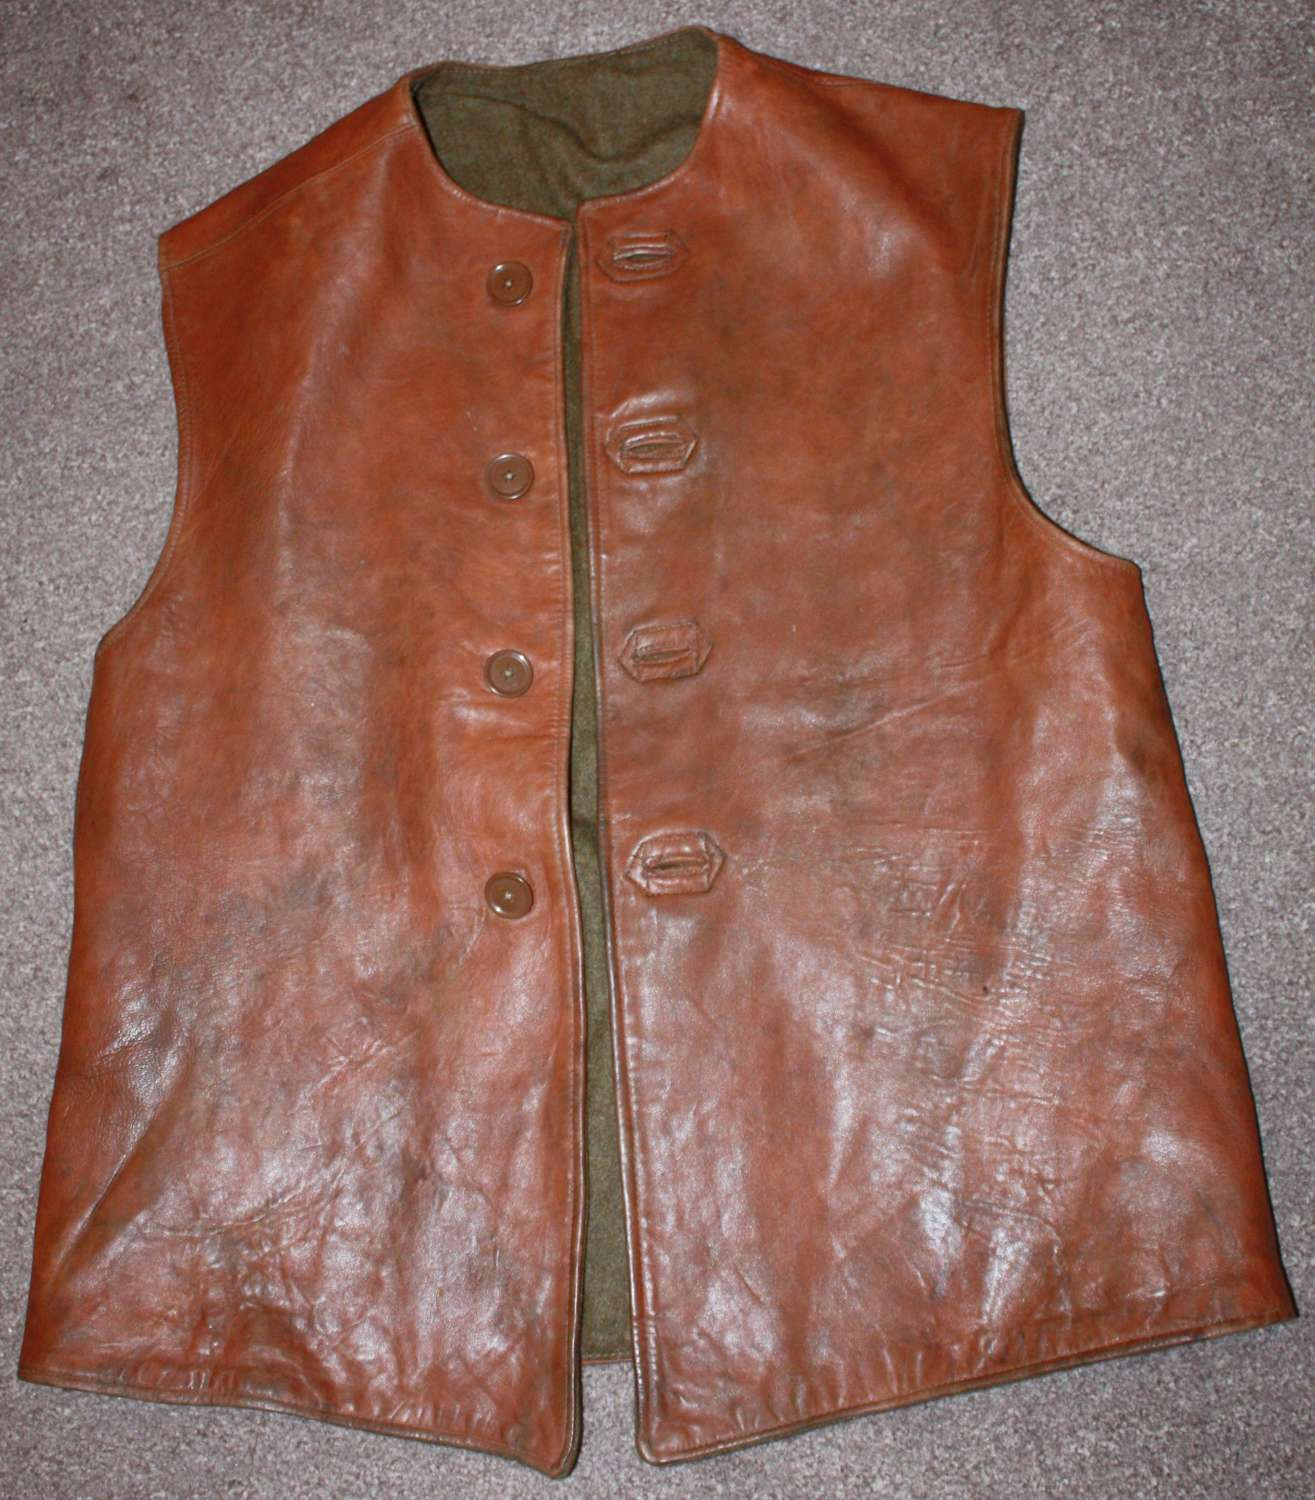 A GOOD 1945 DATED LEATHER JERKIN SIZE 2 CAMOUFLAGE  EXAMPLE